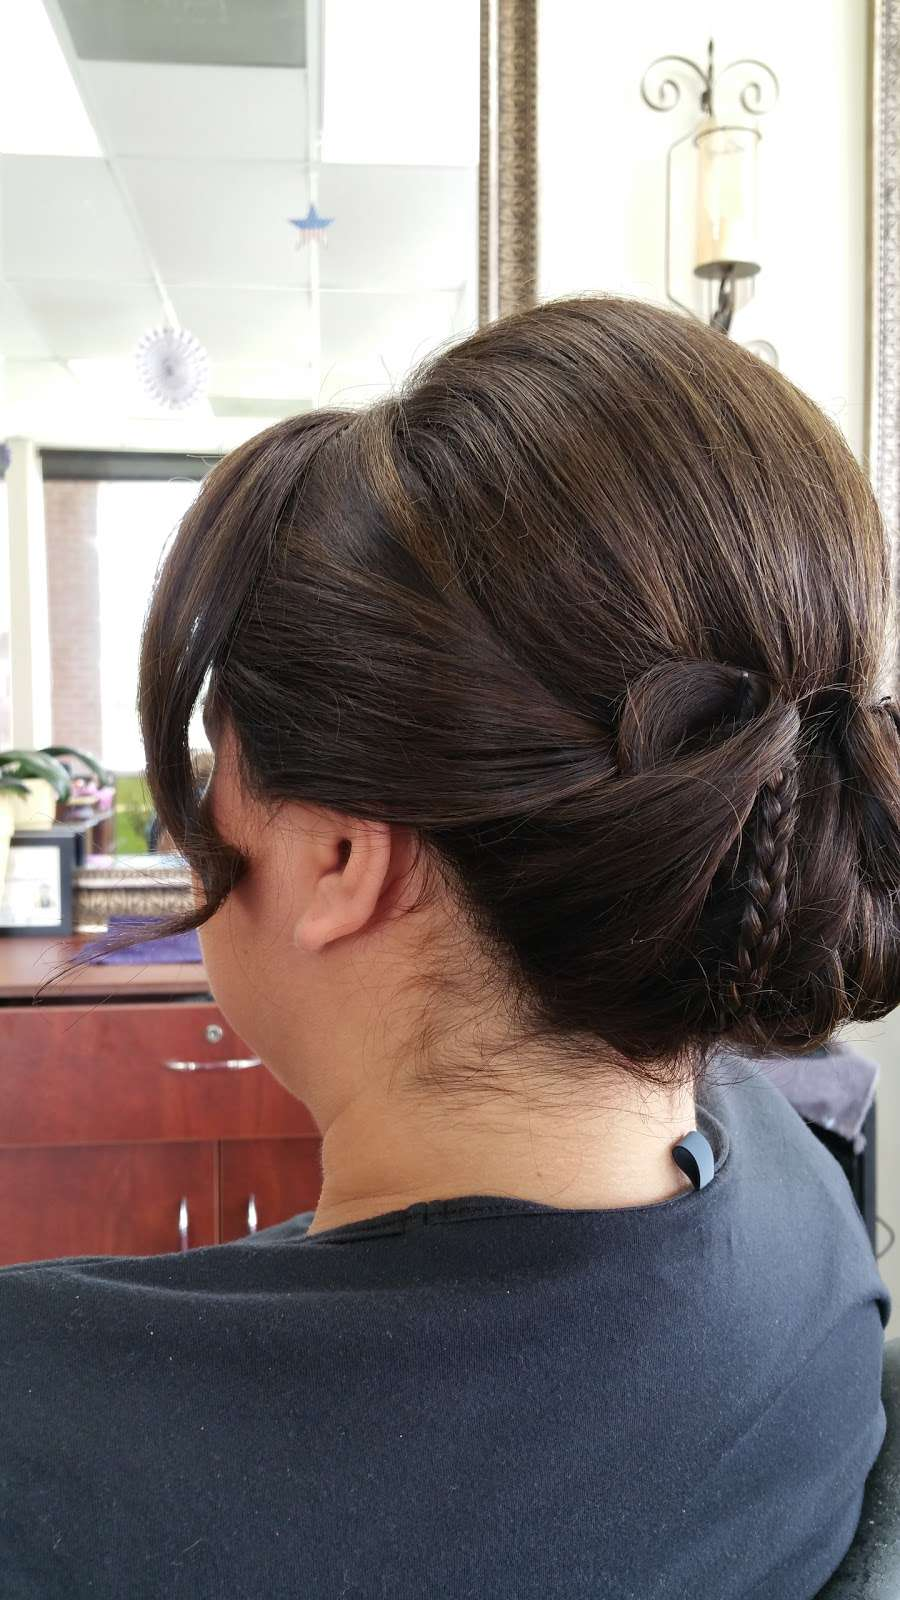 Pro Touch Salon - hair care    Photo 4 of 10   Address: 2746 Manvel Rd, Pearland, TX 77584, USA   Phone: (281) 997-7277